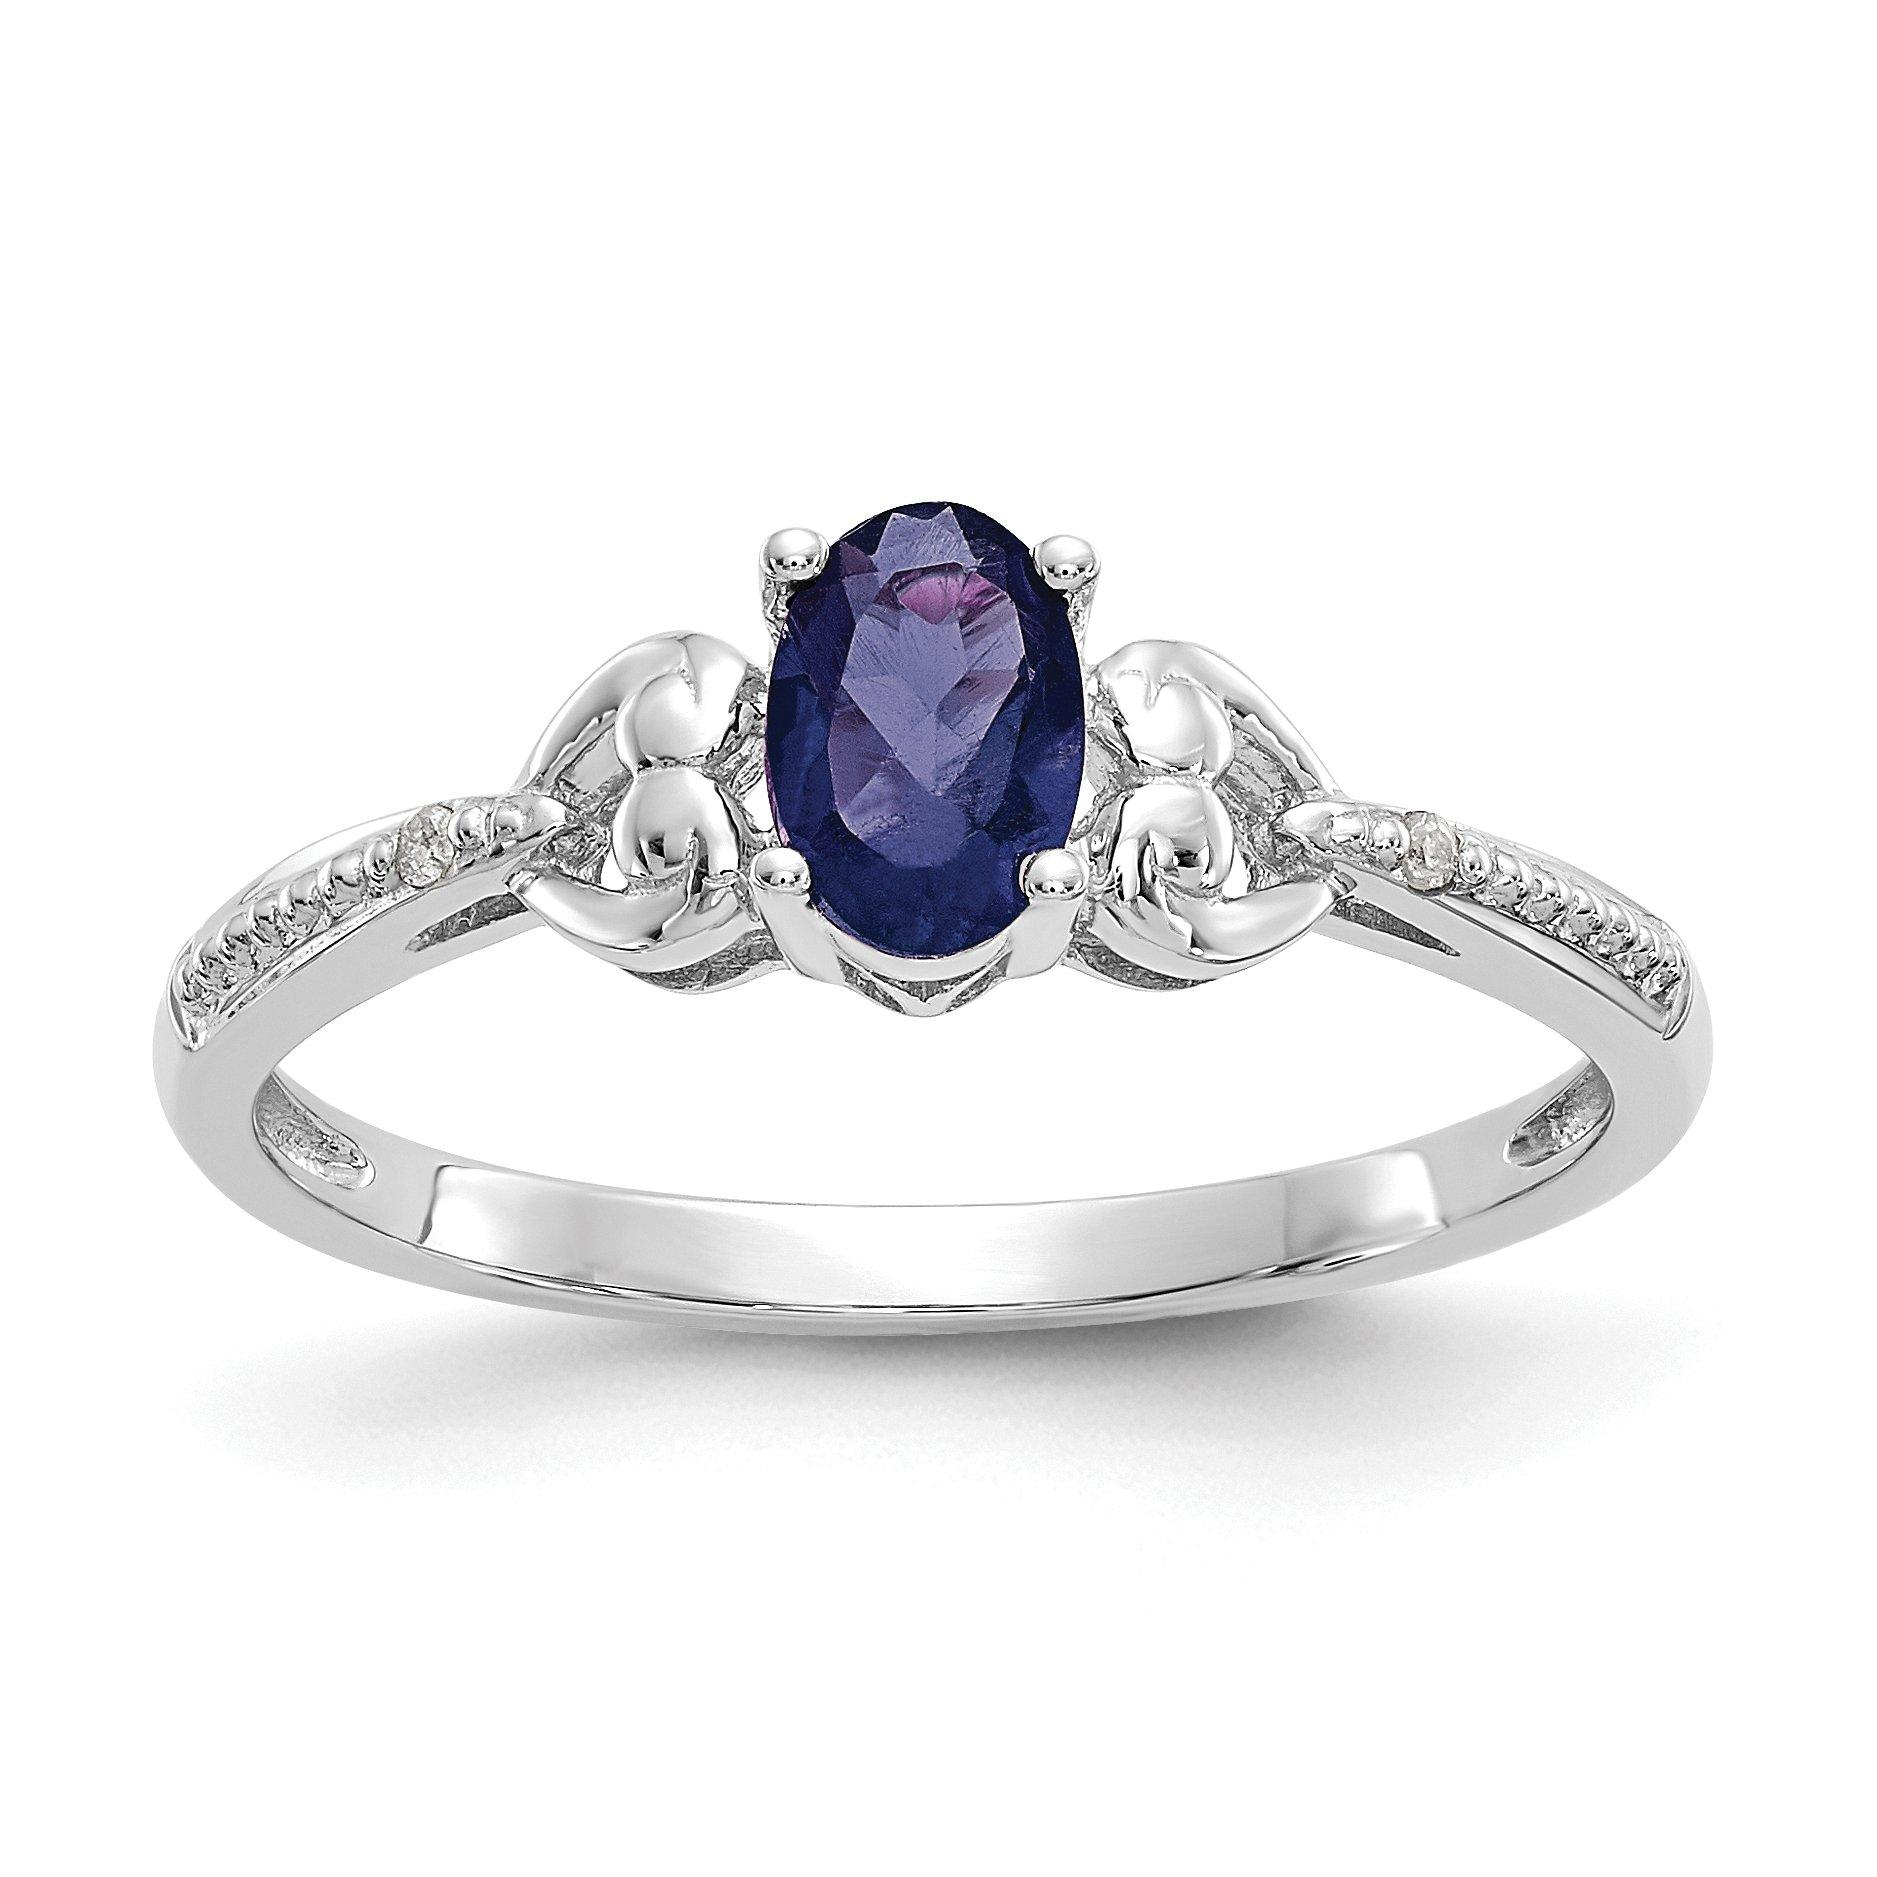 x white sapphire gold rings window a by flanked single light set pre dark ring stone owned claw two showing through the engagement dress blue with jewellery oval cut